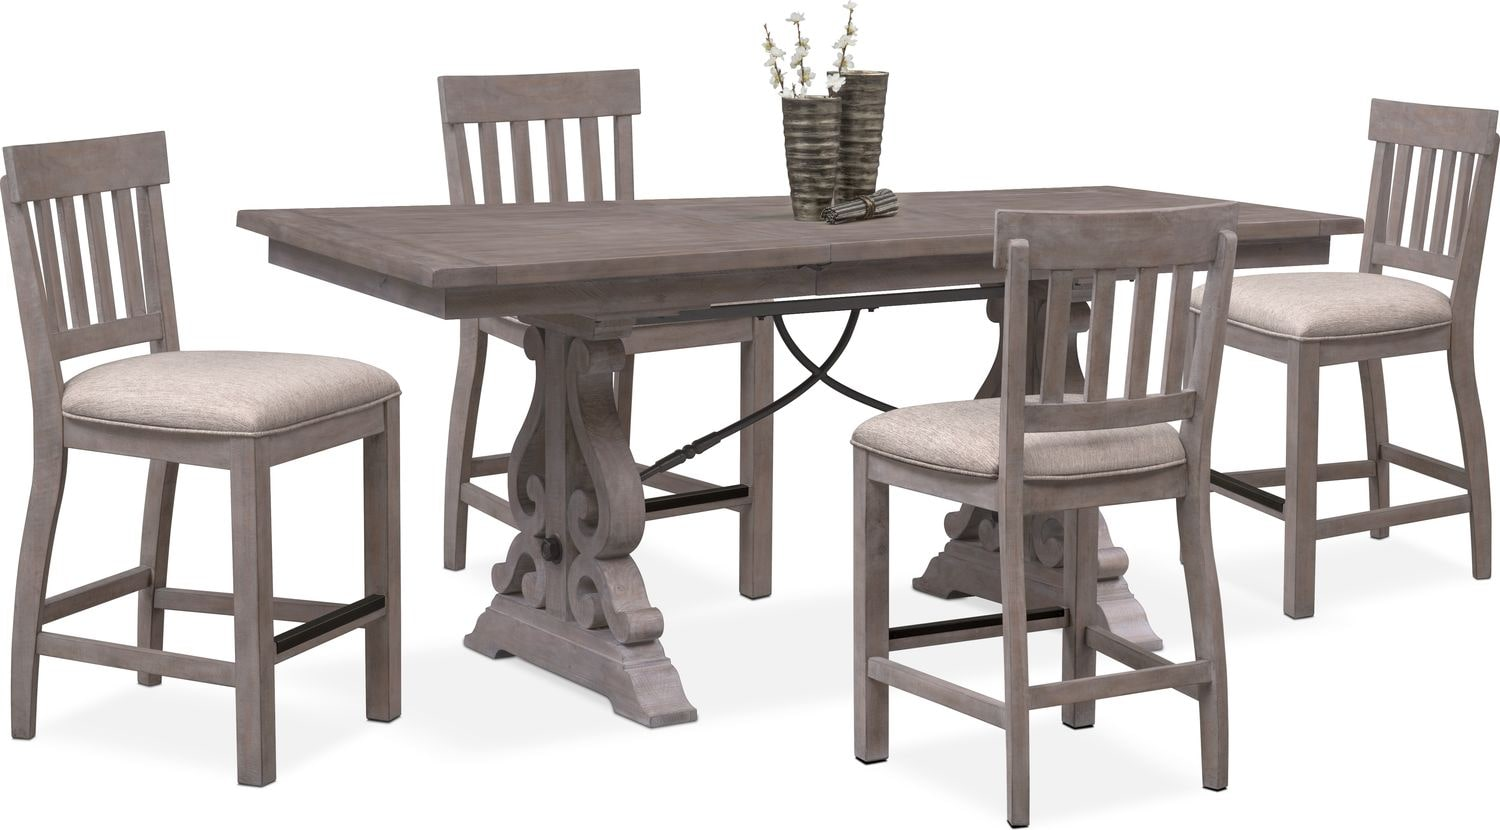 Genial Charthouse Counter Height Dining Table And 4 Stools   Gray